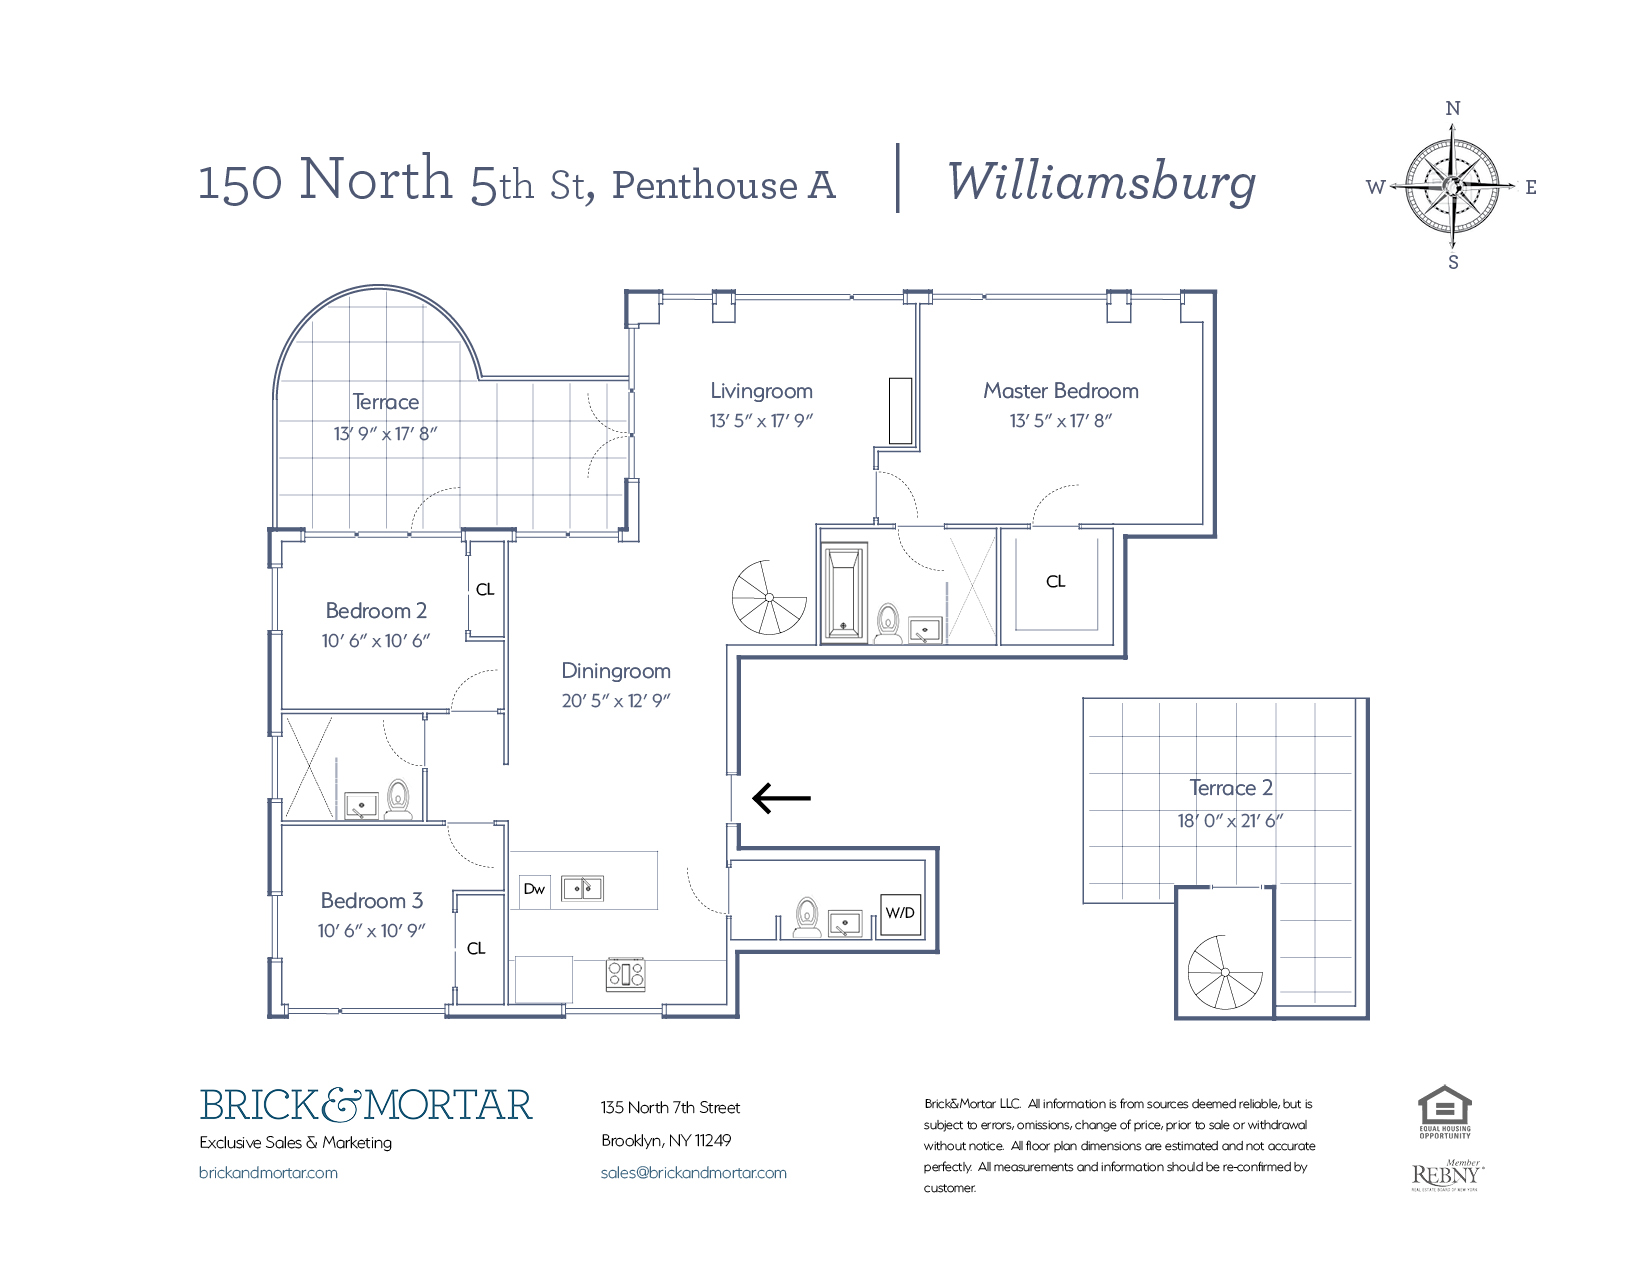 Condo, 150 North 5th Street #PHA, Williamsburg - Real Estate